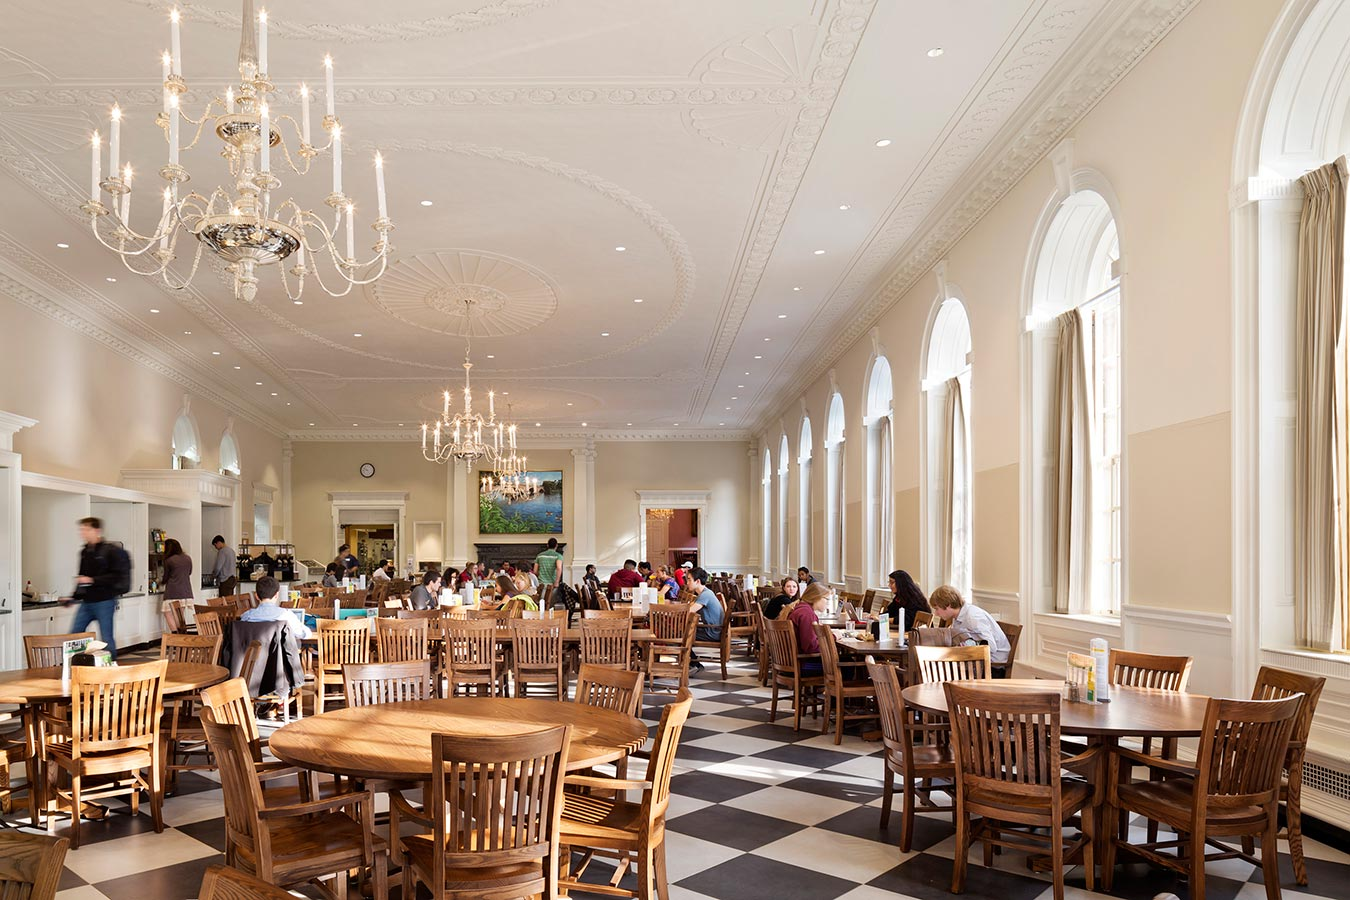 <p>Many of the historic rooms had lost some of their original luster over time, and the restoration takes them back to their original grandeur while adding modern conveniences. A guiding principle was the seamless integration of technology—for instance, presentations can now be made in the dining hall via screens hidden in the ceiling. <br><small>© Michael Moran/OTTO</small></p>